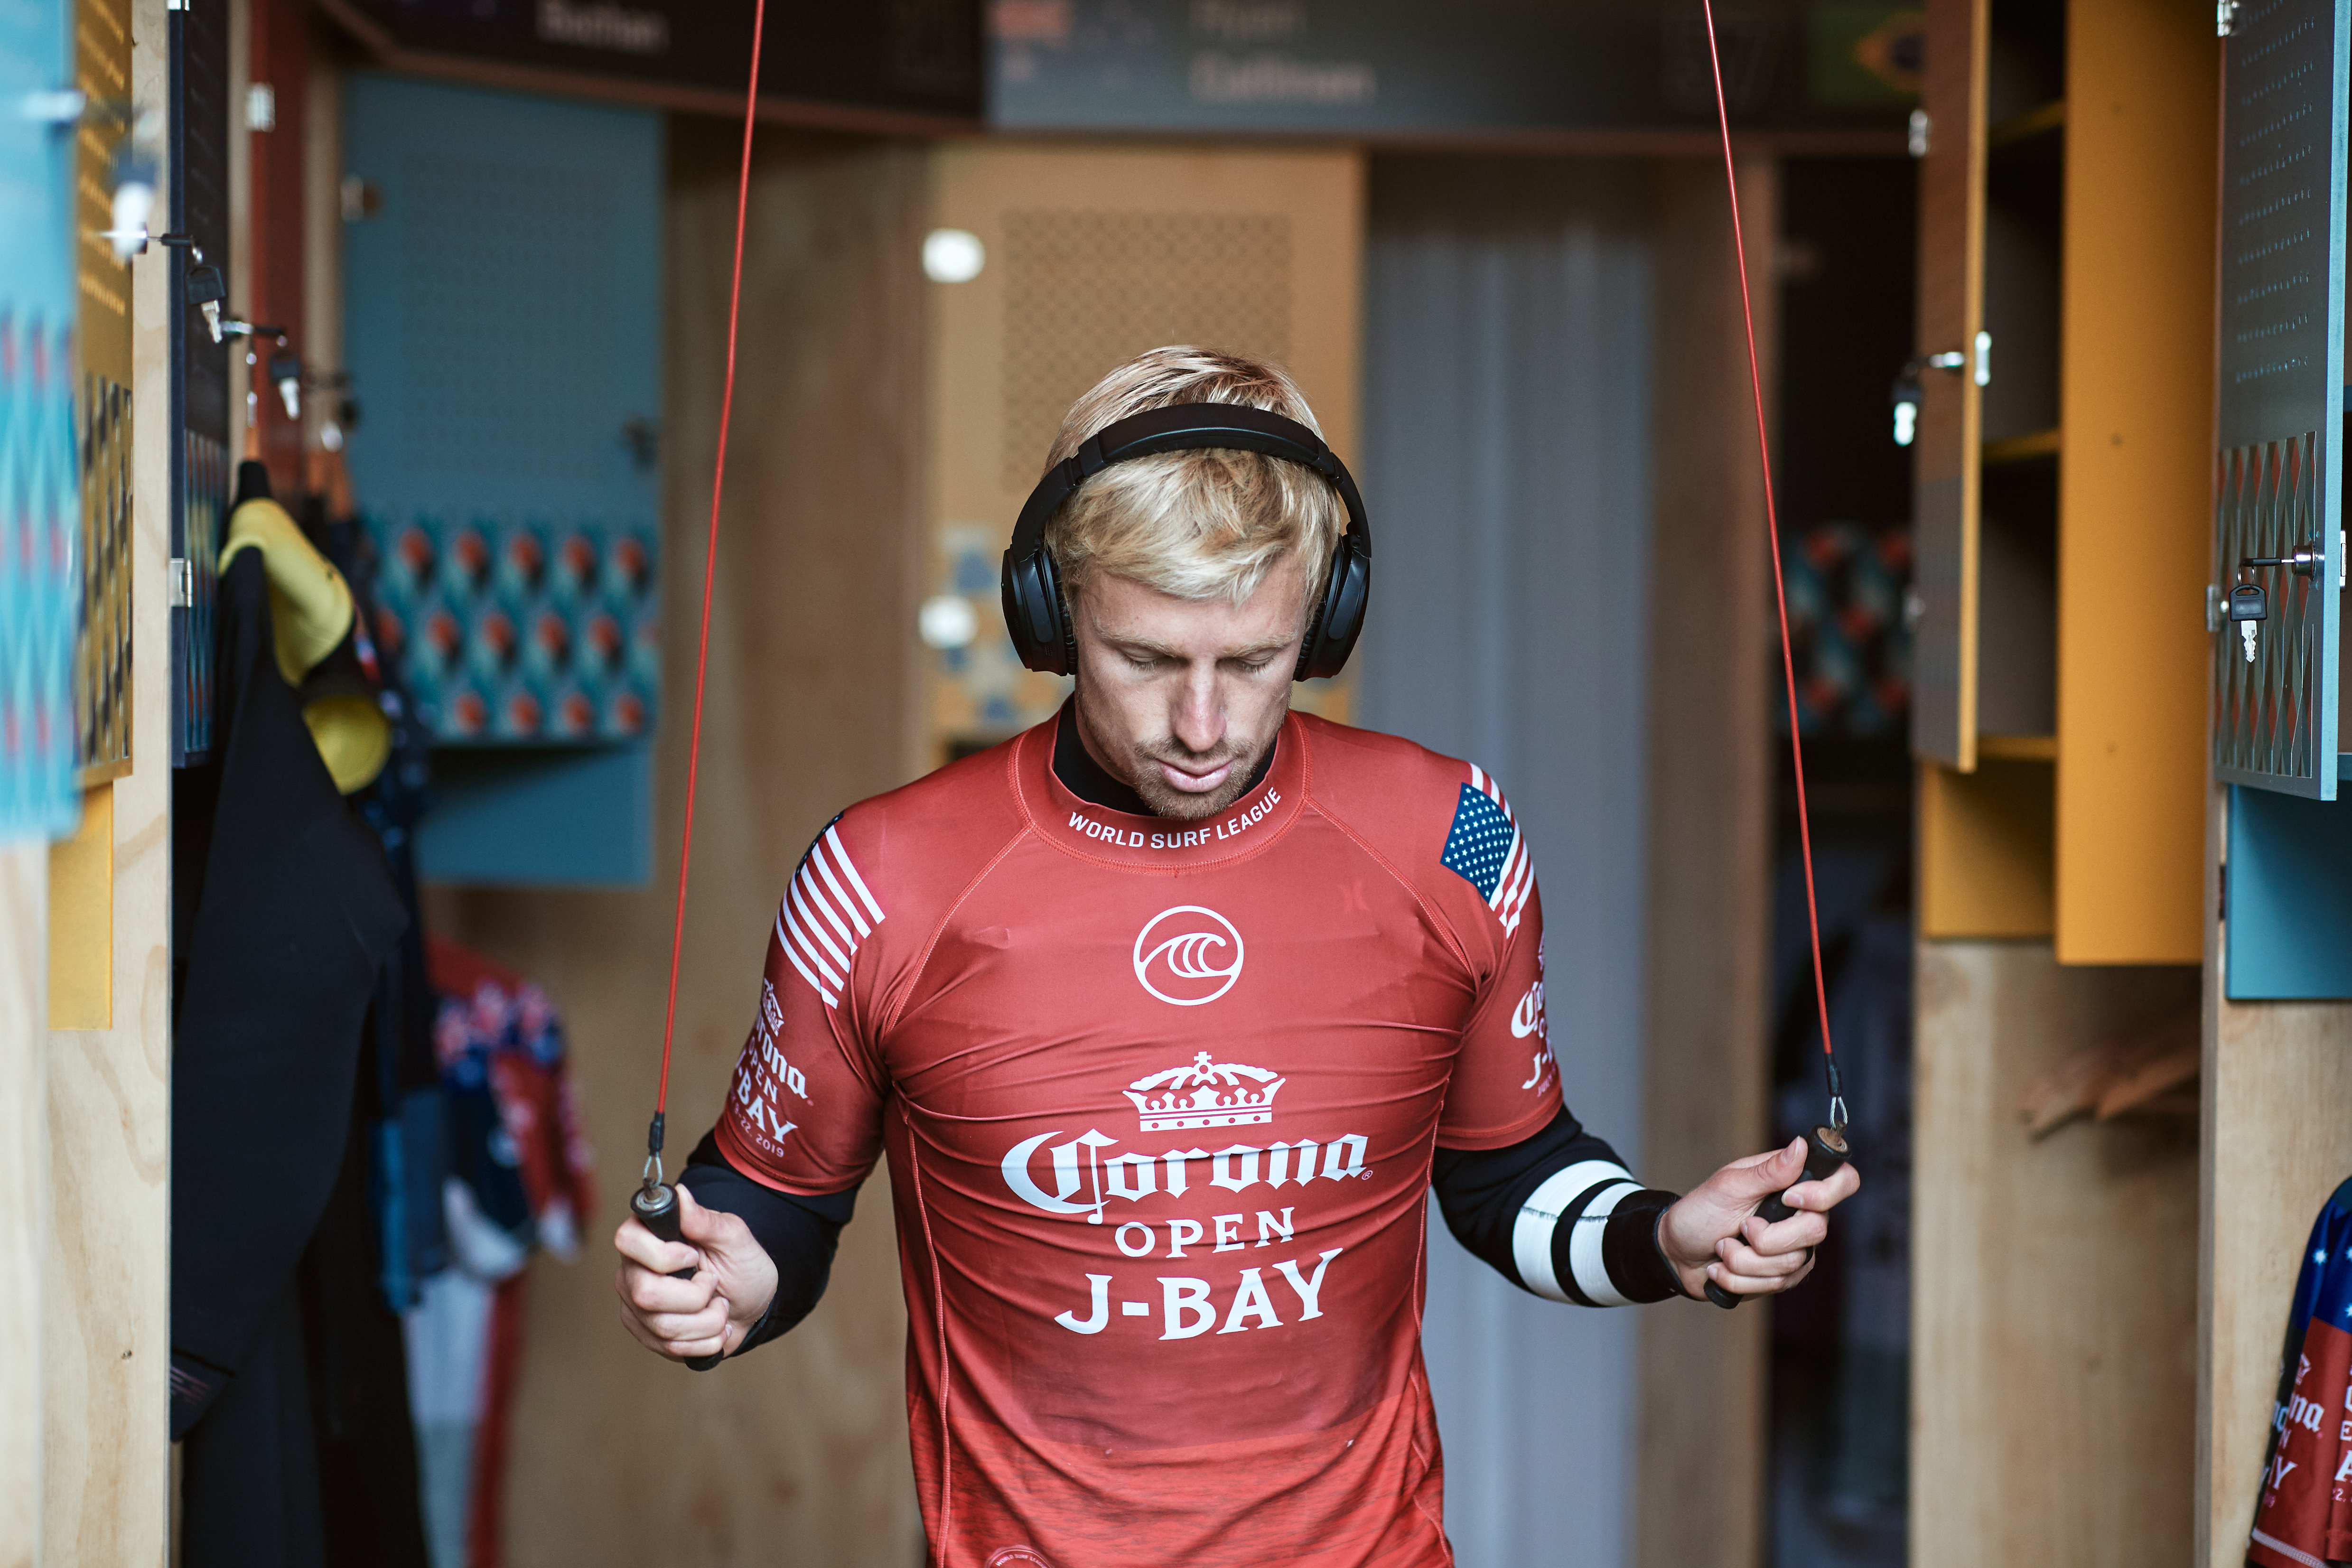 JEFFREYS BAY, SOUTH AFRICA - JULY 17: Kolohe Andino of the United States advances to the quarter finals of the 2019 Corona Open J-Bay after winning Heat 3 of Round 4 at Supertubes on July 17, 2019 in Jeffreys Bay, South Africa. (Photo by Ed Sloane/WSL via Getty Images)